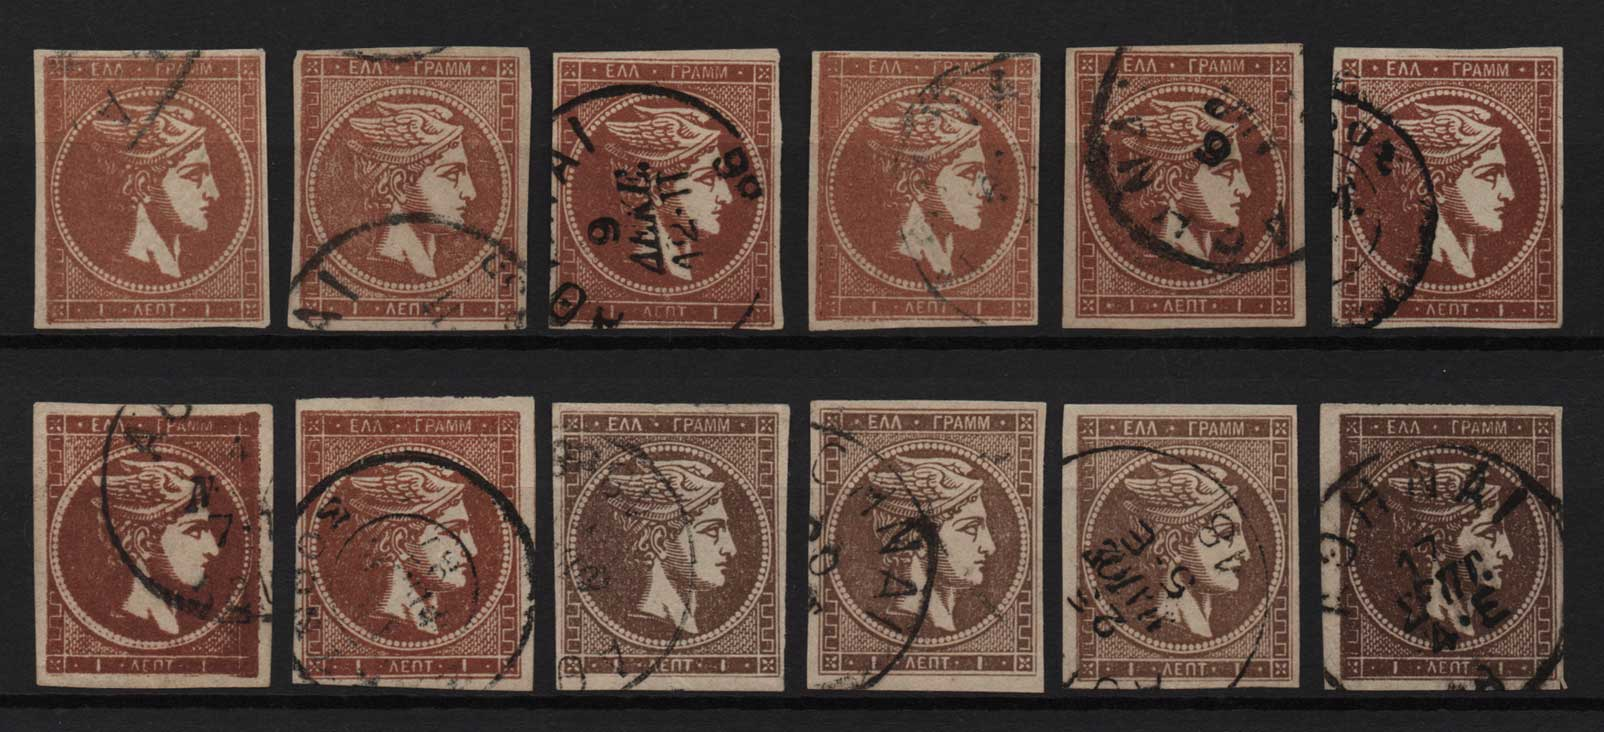 Lot 15 - GREECE-  LARGE HERMES HEAD large hermes head -  Athens Auctions Public Auction 64 General Stamp Sale